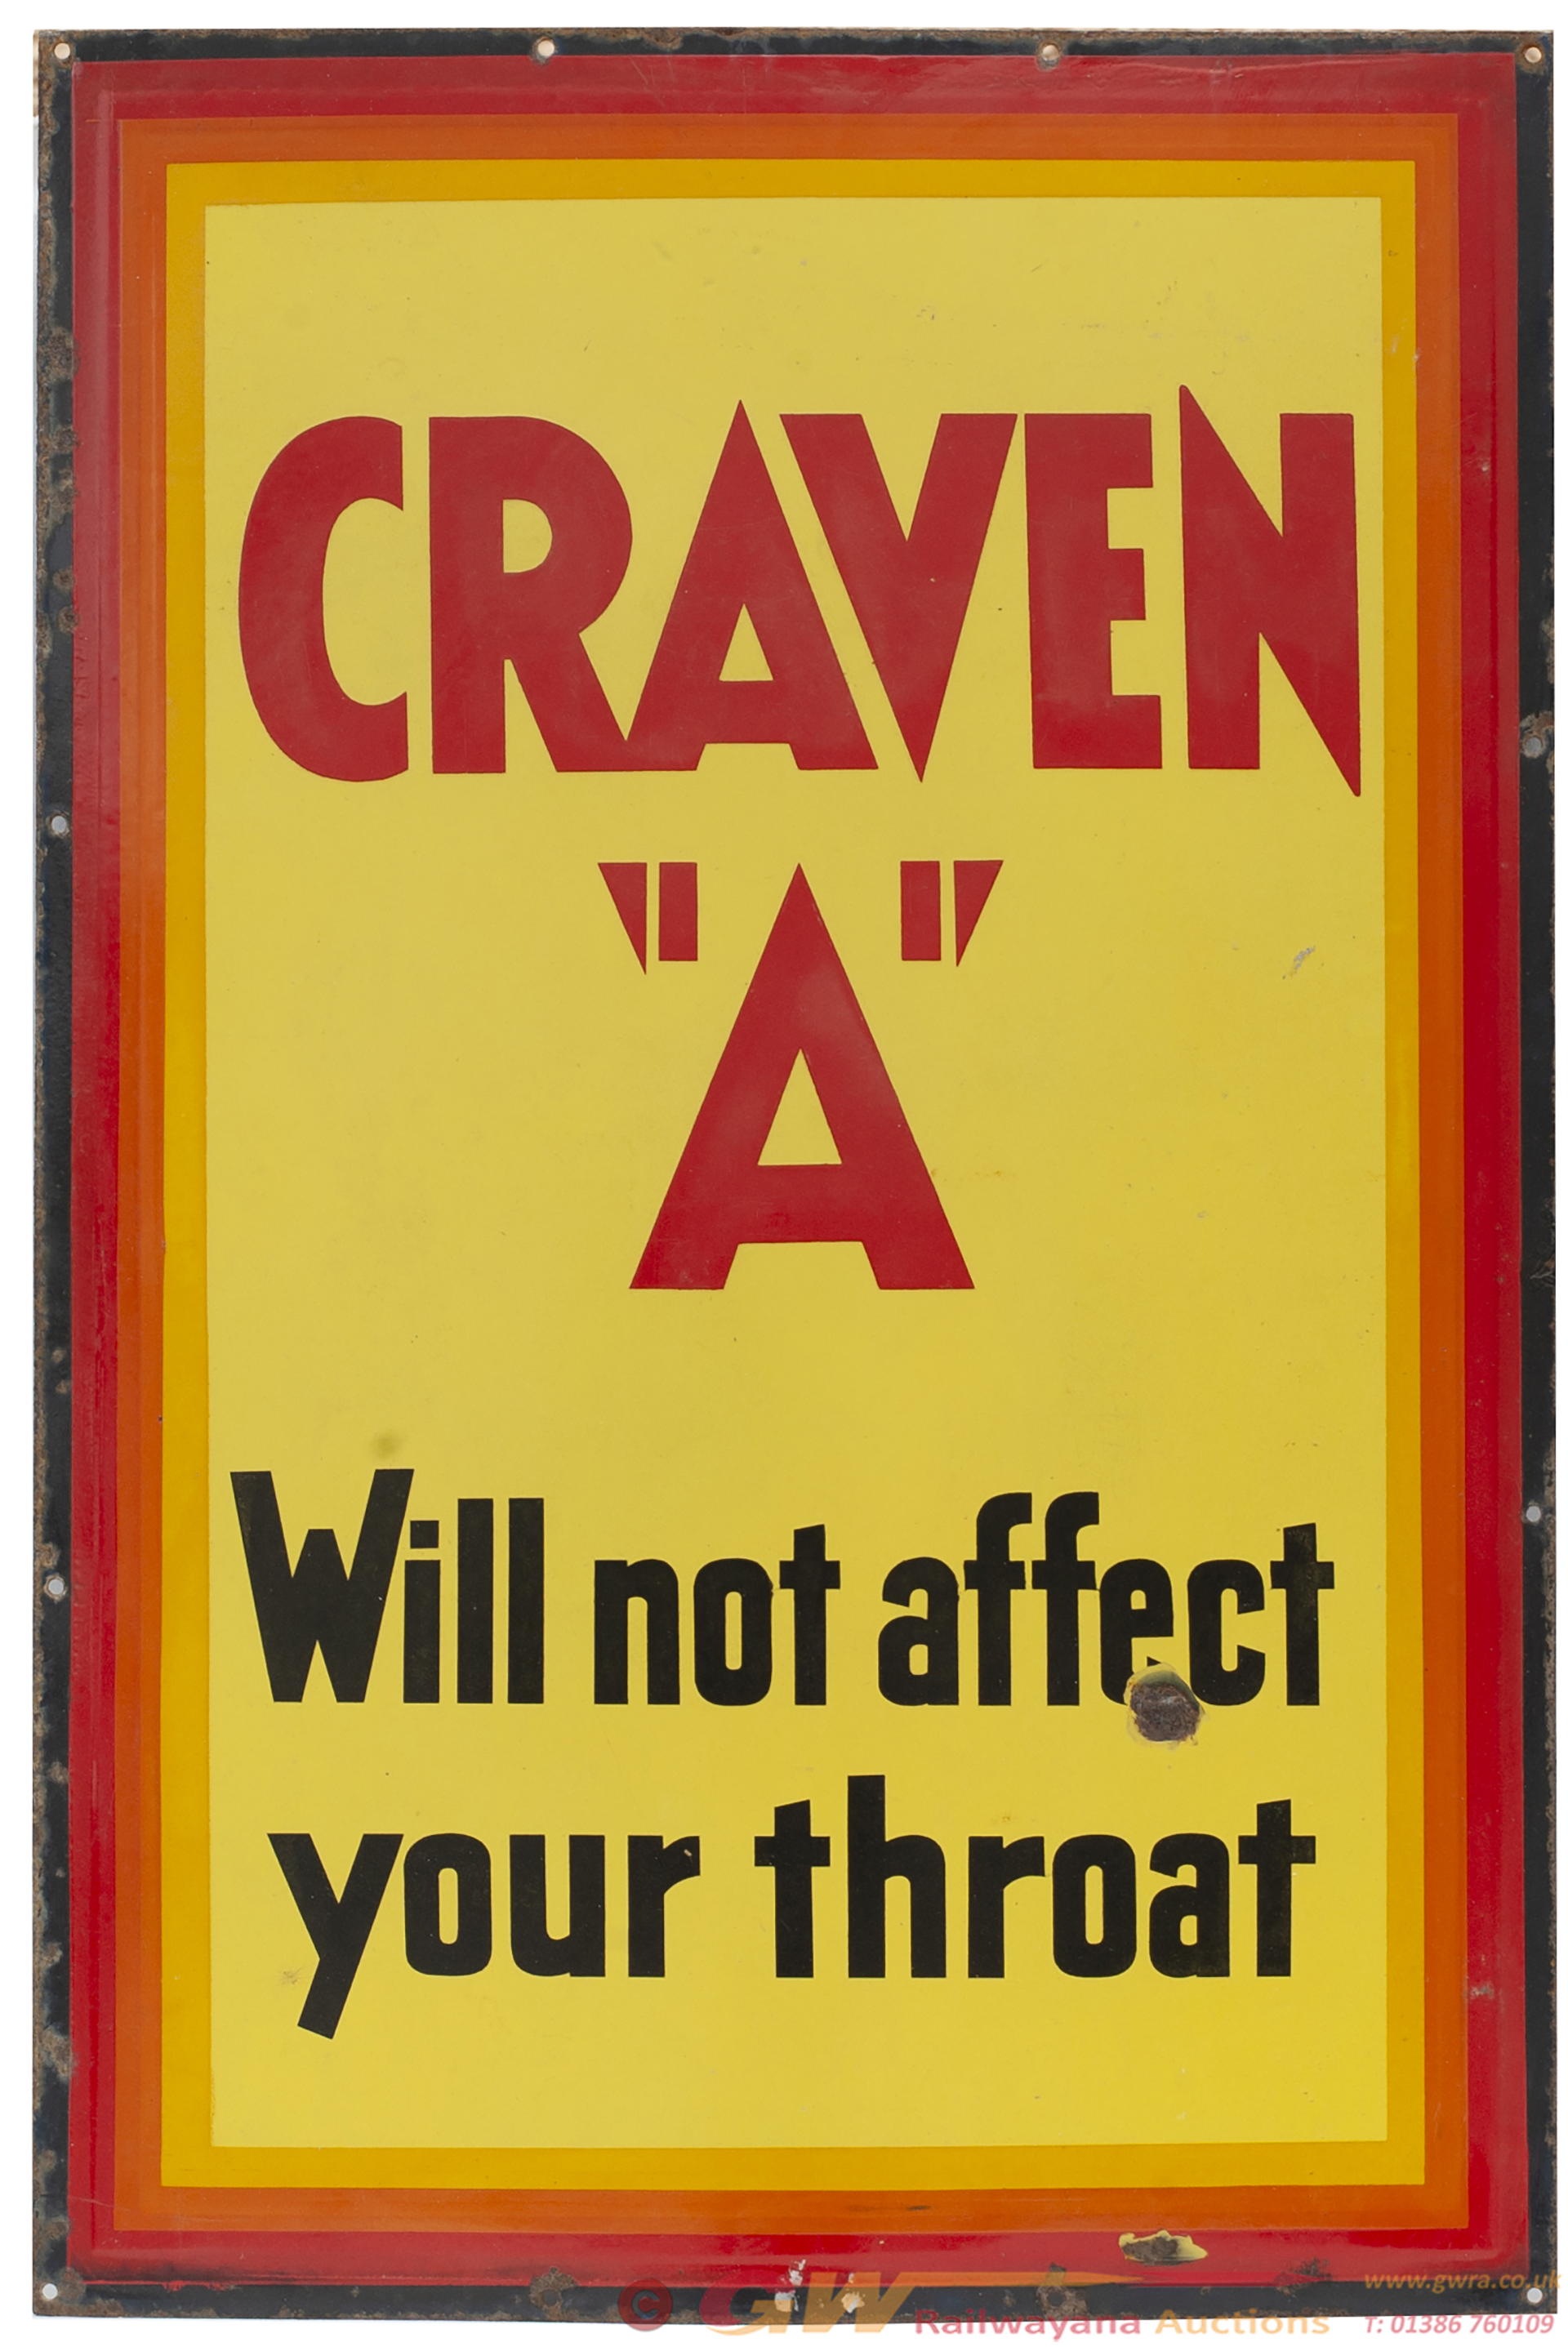 Advertising Enamel Sign CRAVEN A WILL NOT AFFECT